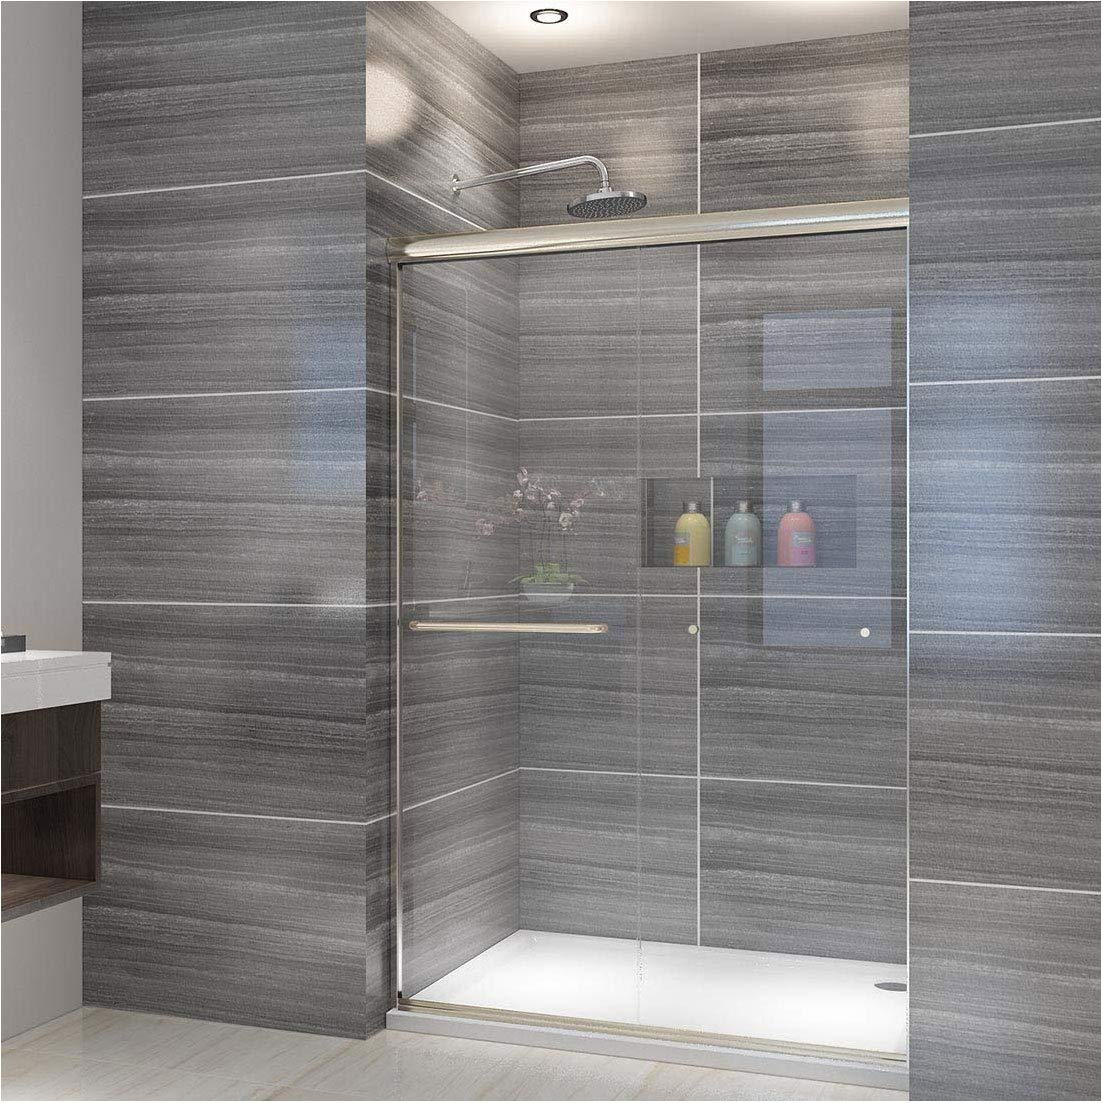 ELEGANT SHOWERS 46.5 in.- 48 in. W x 72 in. H, Semi-frameless 2 Bypass Sliding Shower Doors, 1/4 in. Shower Clear Glass Panel, Brushed Nickel Finish